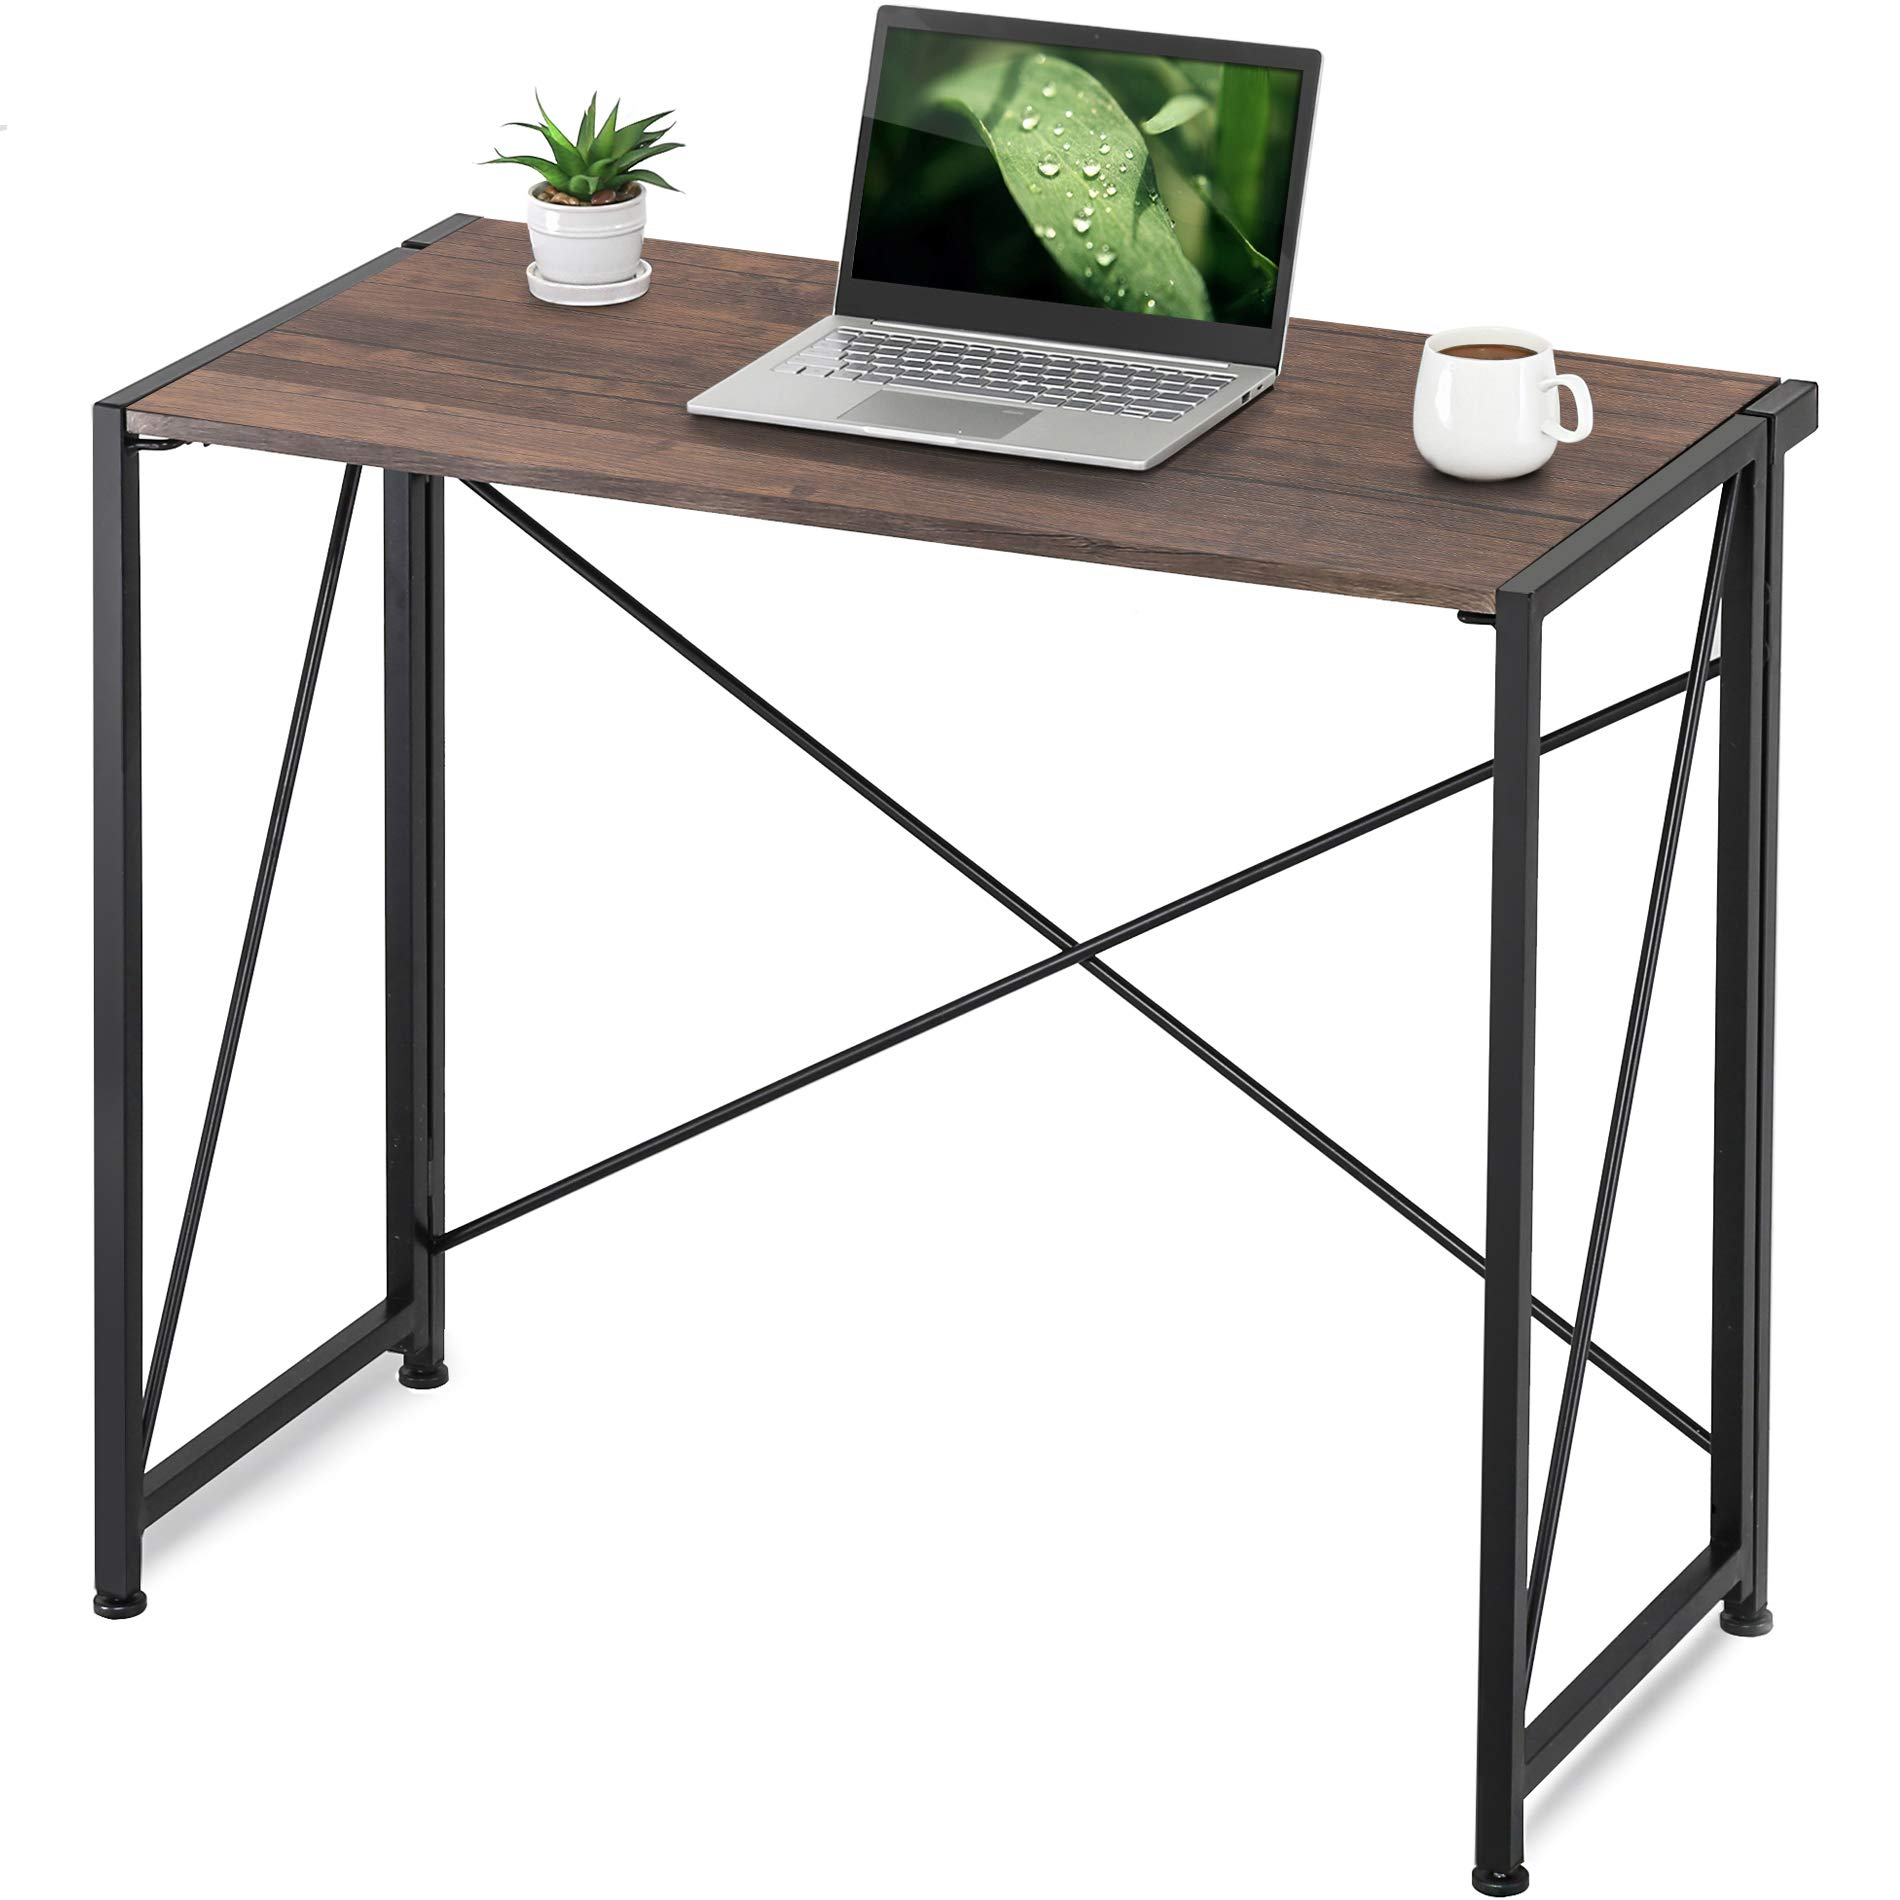 Homury Floding Computer Desk,Wood and Metal Writing Table for Home & Office, Espresso,HCD109001WE